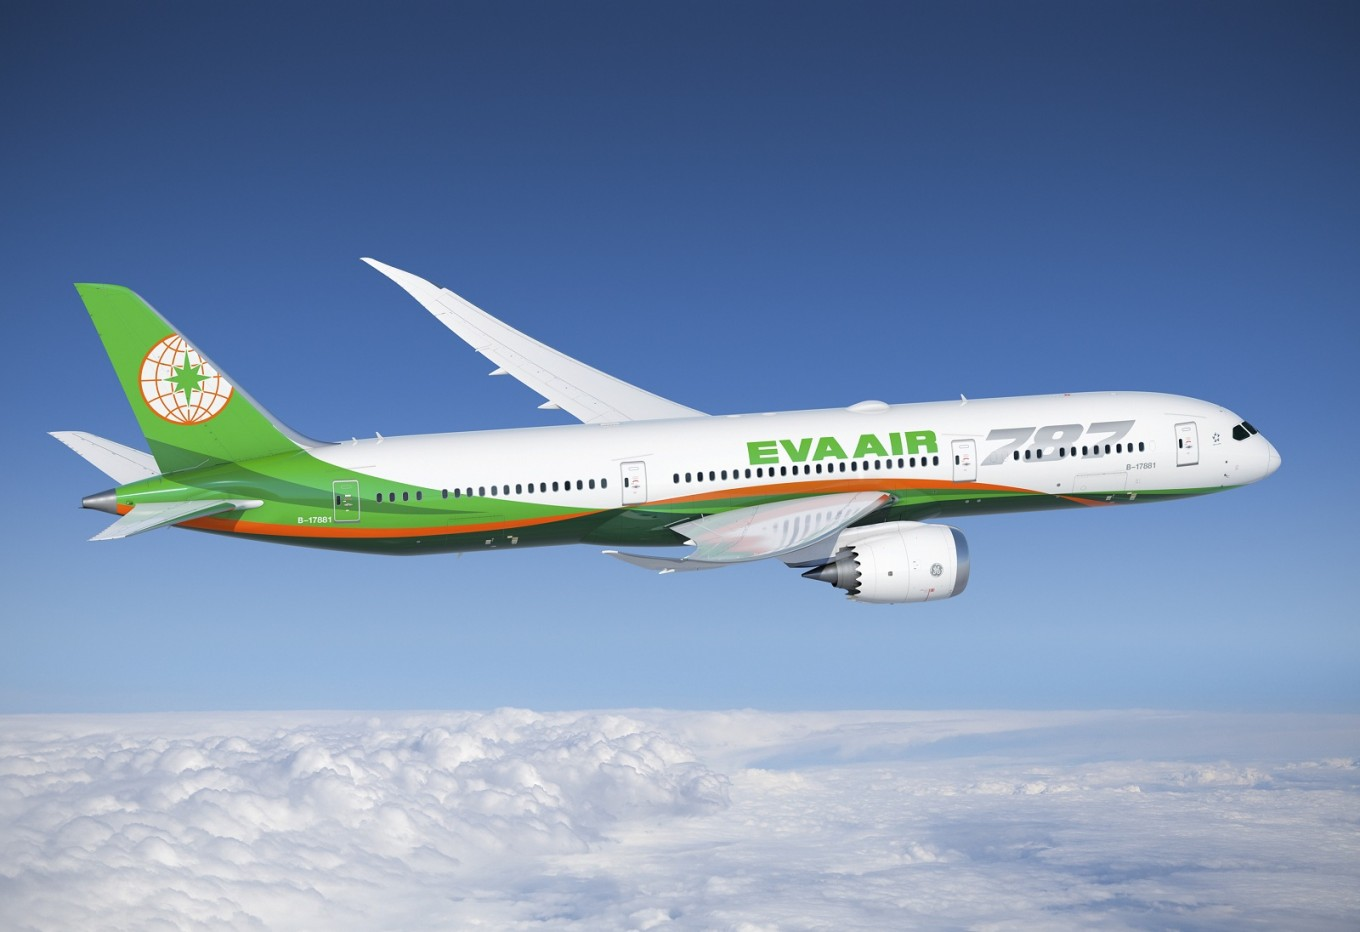 EVA Air earns two recognitions from AirlineRatings